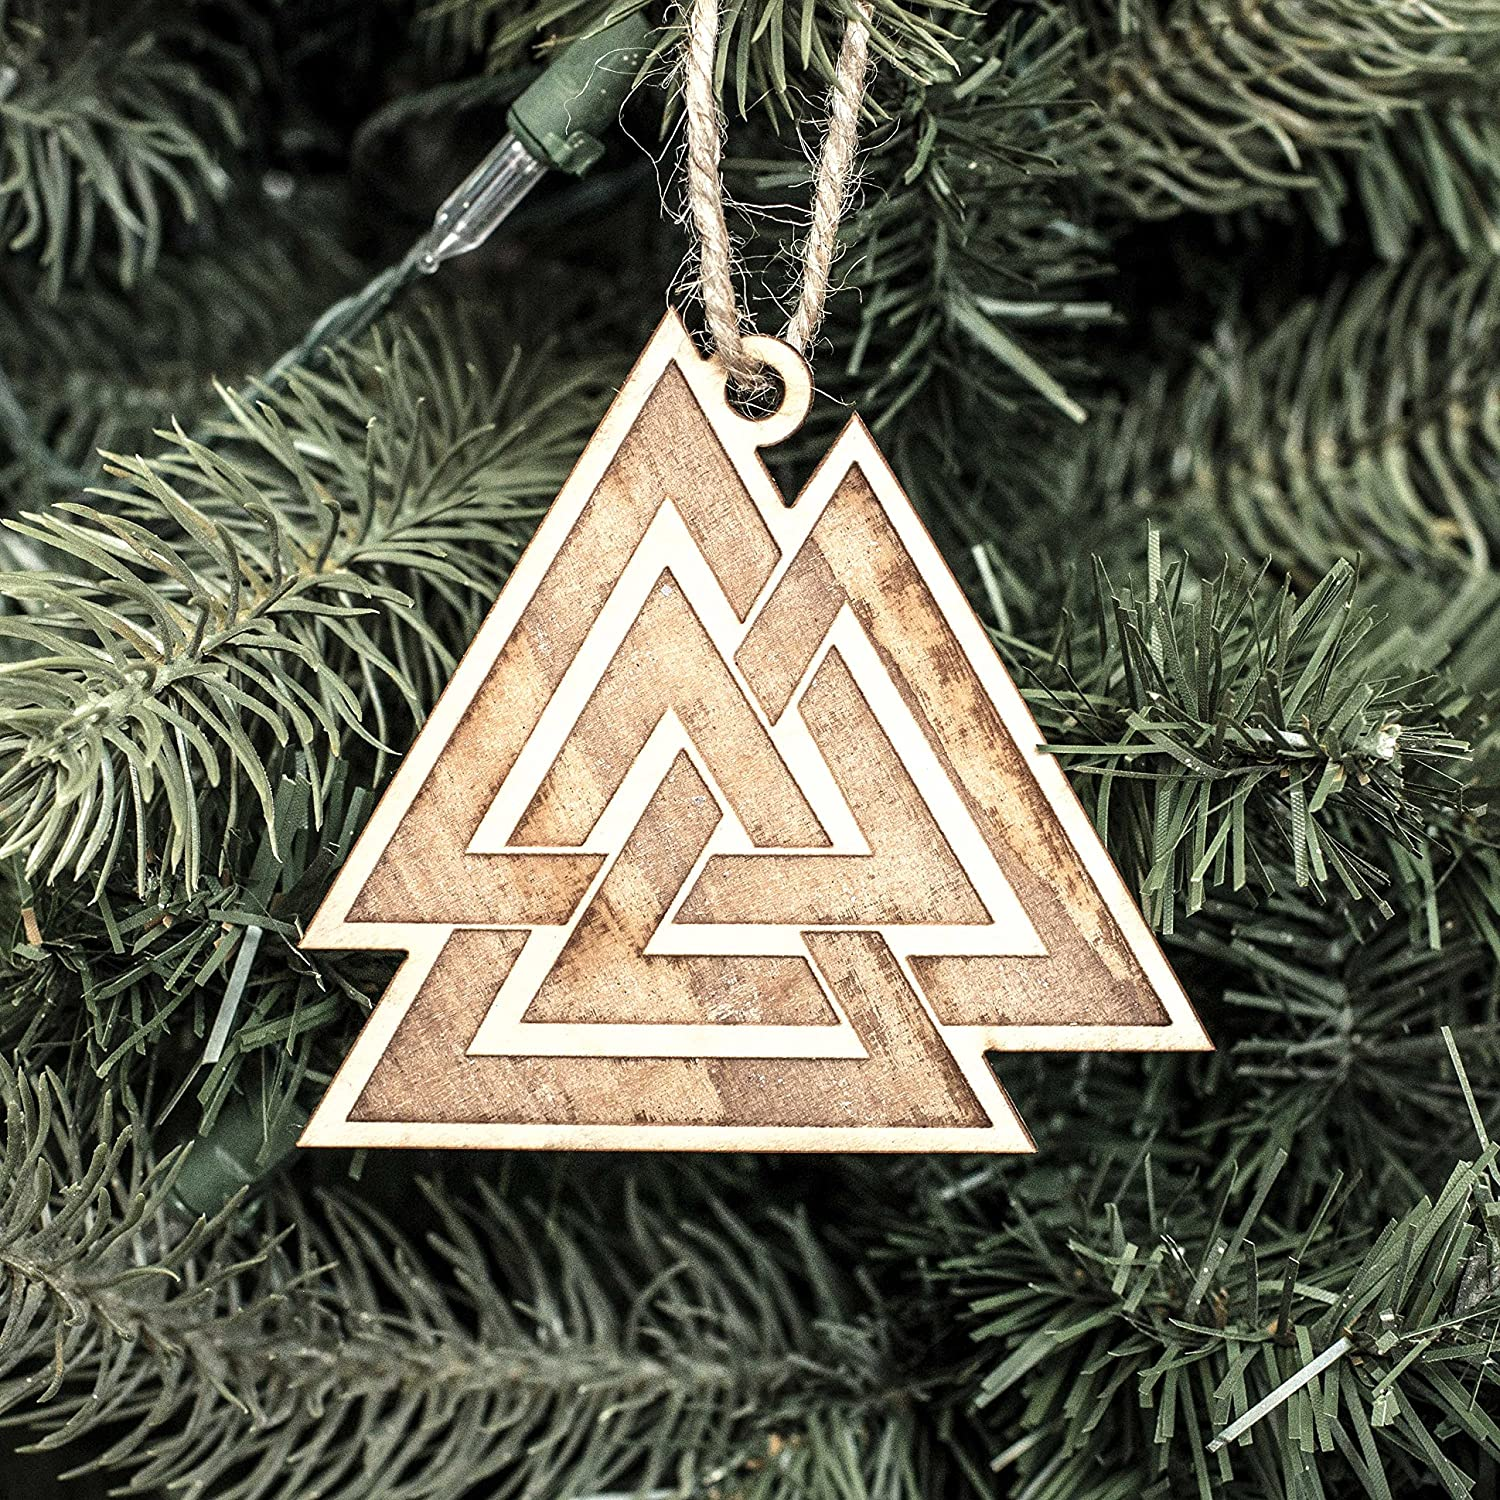 sold out Ornament - Valknut- Raw 3x3in Wood online shopping